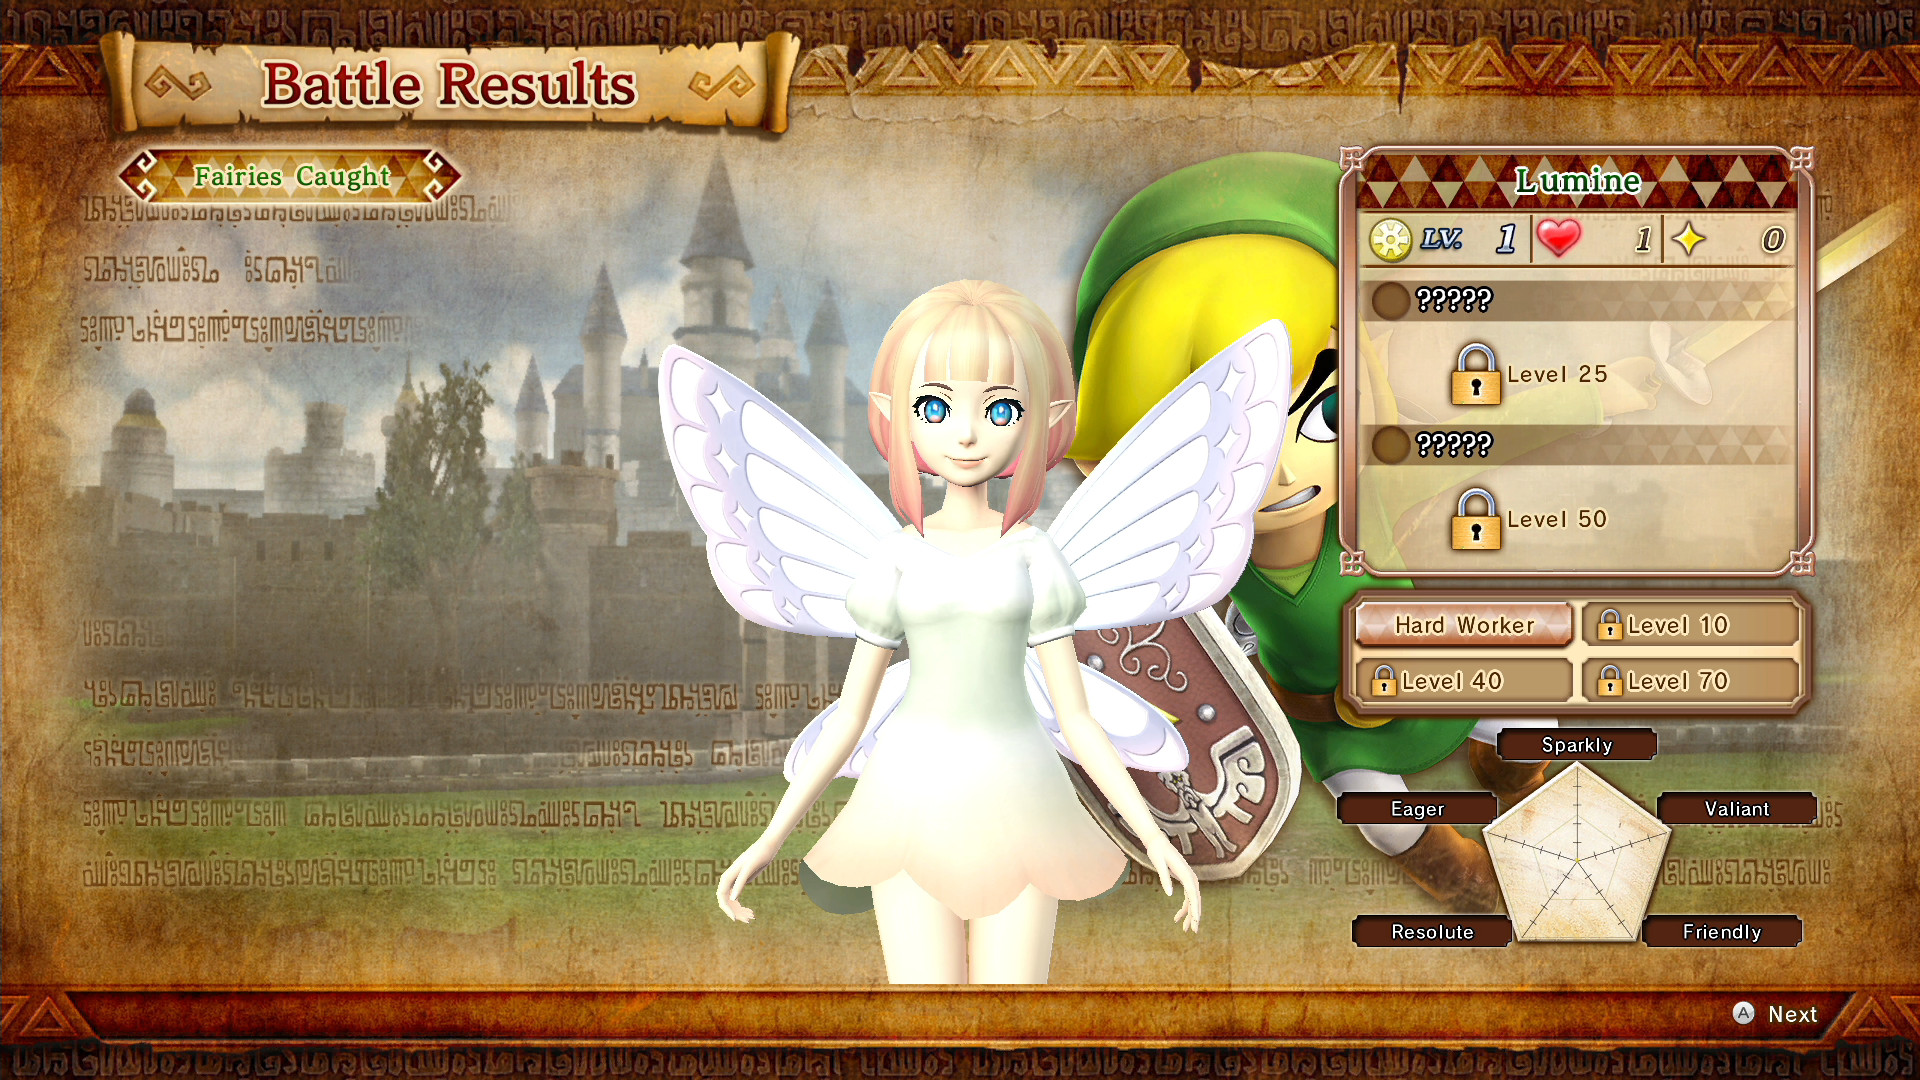 Hyrule Warriors Definitive Edition Faq How To Change Costume Unlock My Fairy And Play Co Op Multiplayer On Switch Rpg Site